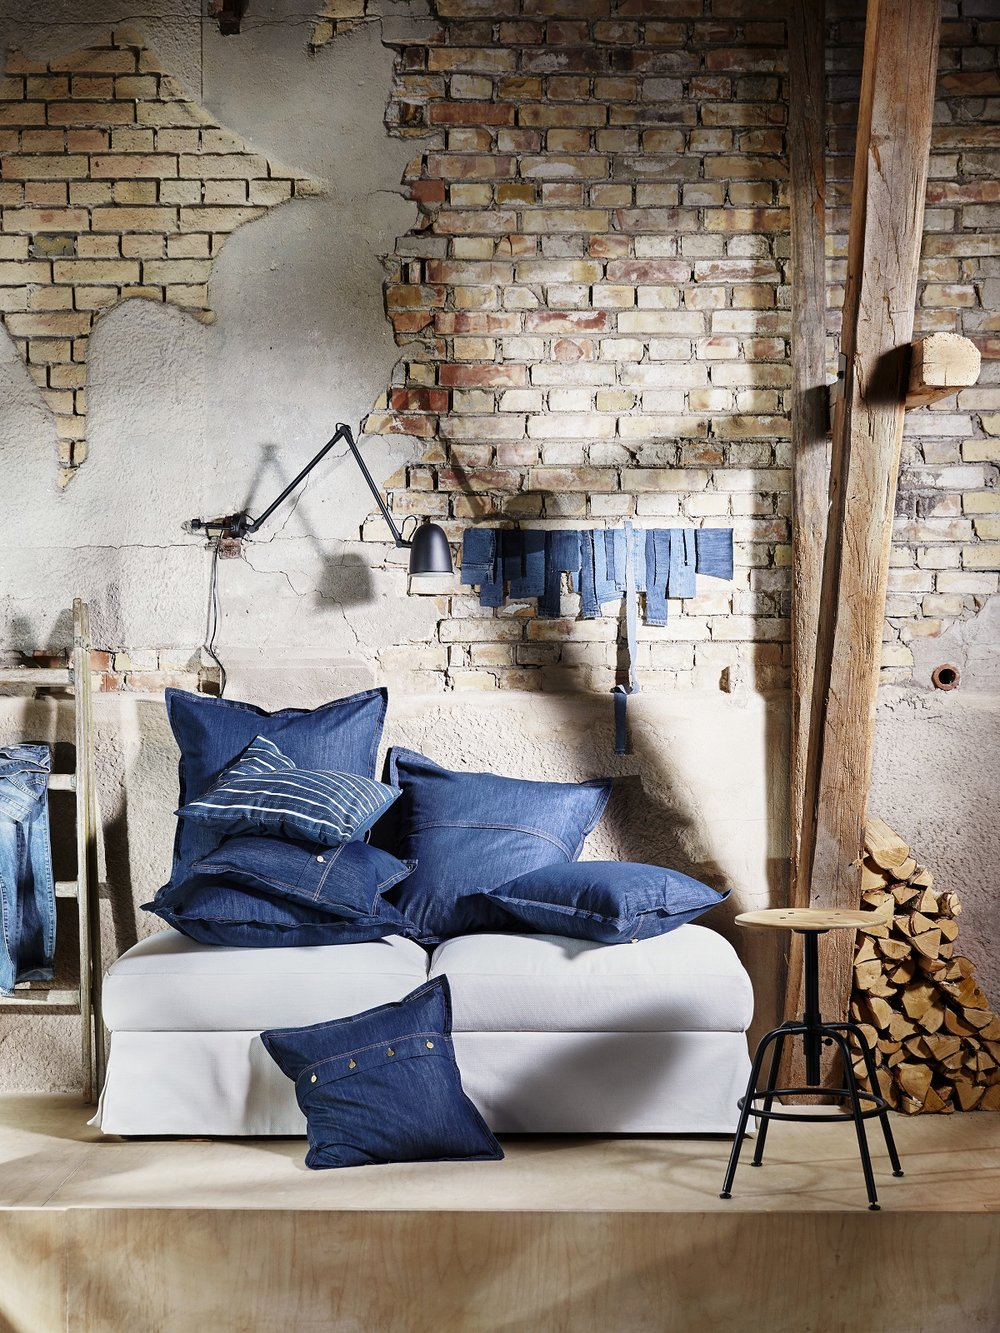 IKEA denim Sissil pillows  (dyed without a single drop of water and with less energy than regular denim)